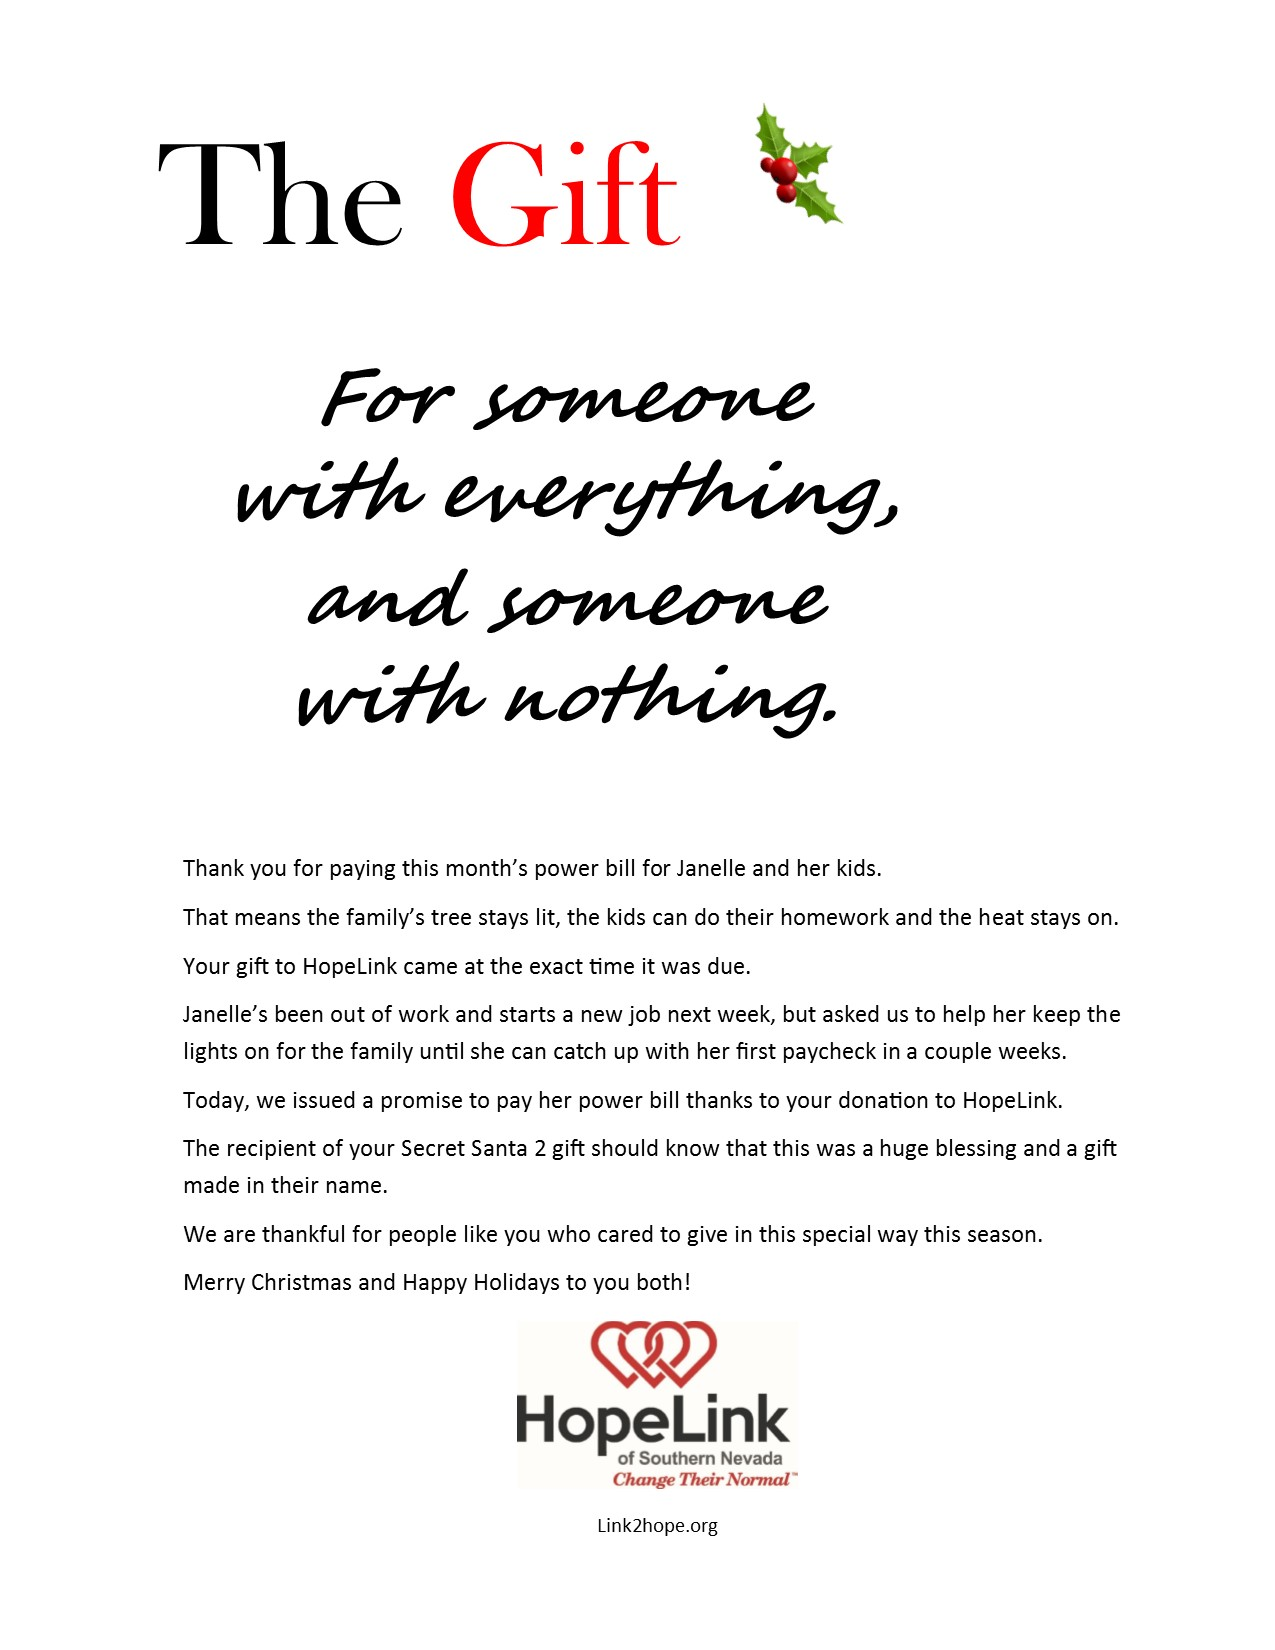 Give The Gift To Someone Who Has Everything And With Nothing